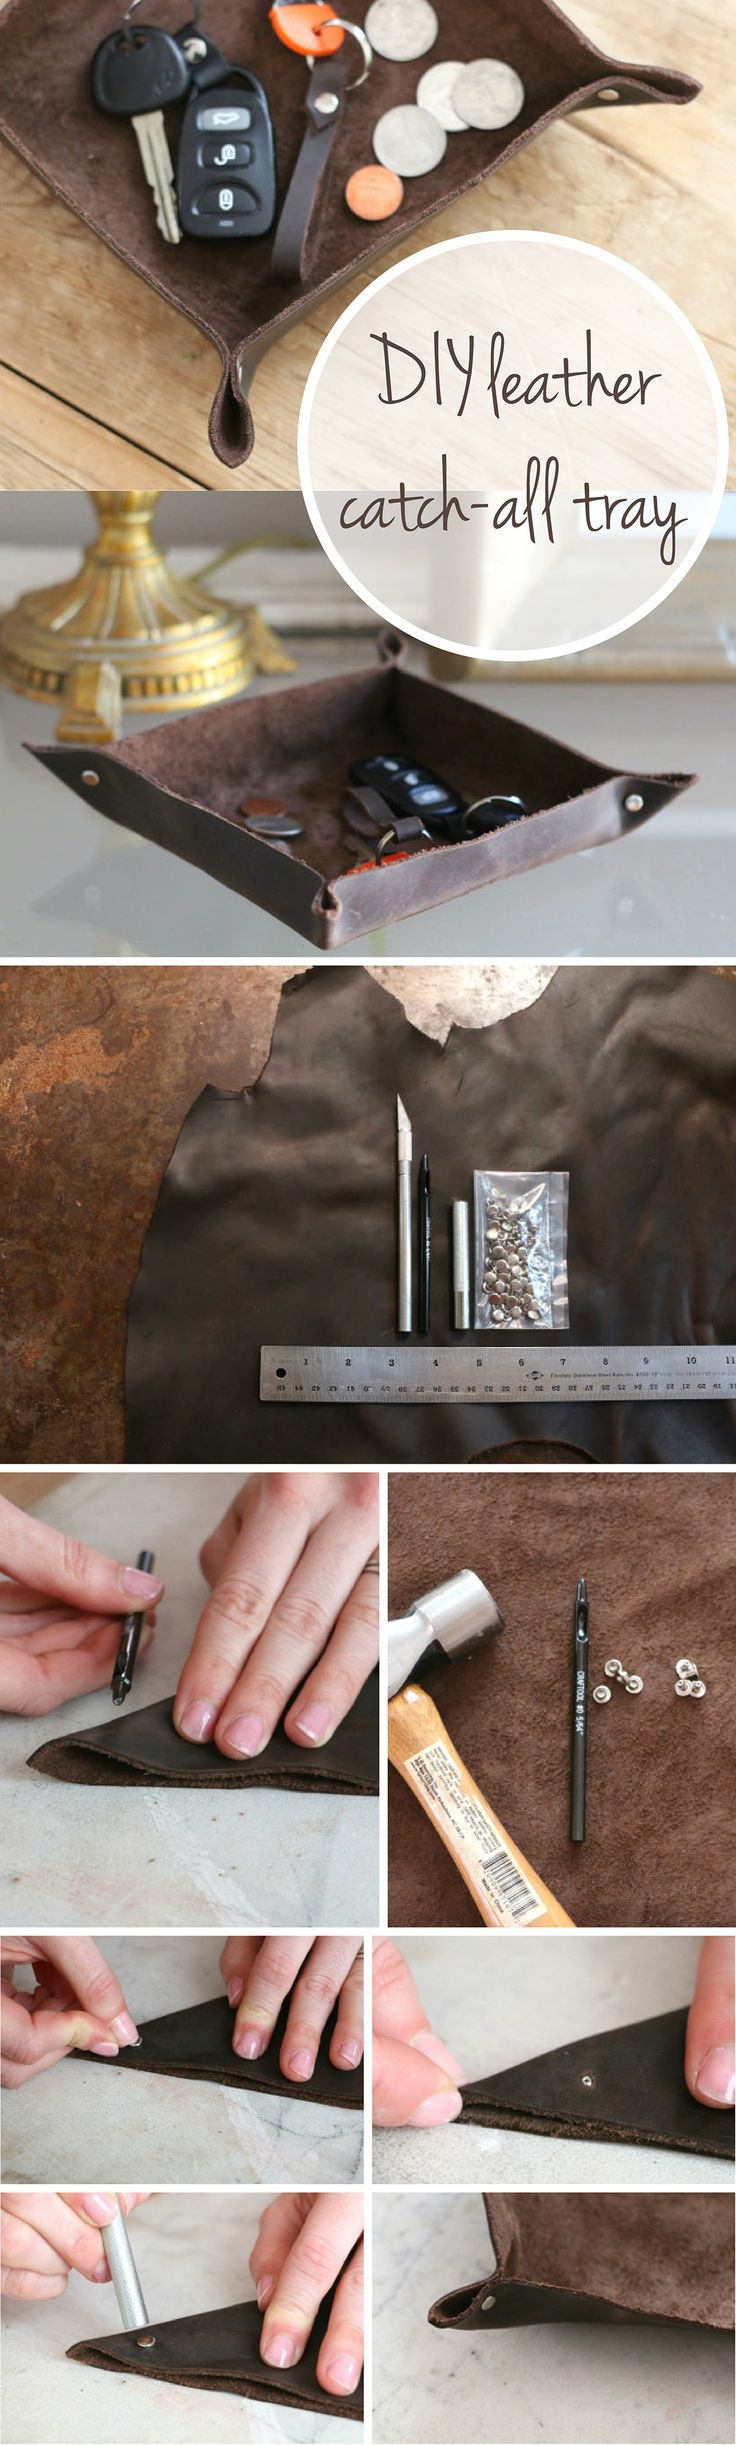 A great handmade gift for dad or a new homeowner! DIY leather catch-all tray for the entry way or bedside table. So clever and easy to make: http://www.ehow.com/ehow-home/blog/make-this-leather-catch-all-tray-and-keep-your-keys-coins-and-clutter-contained/?utm_source=pinterest.com&utm_medium=referral&utm_content=blog&utm_campaign=fanpage